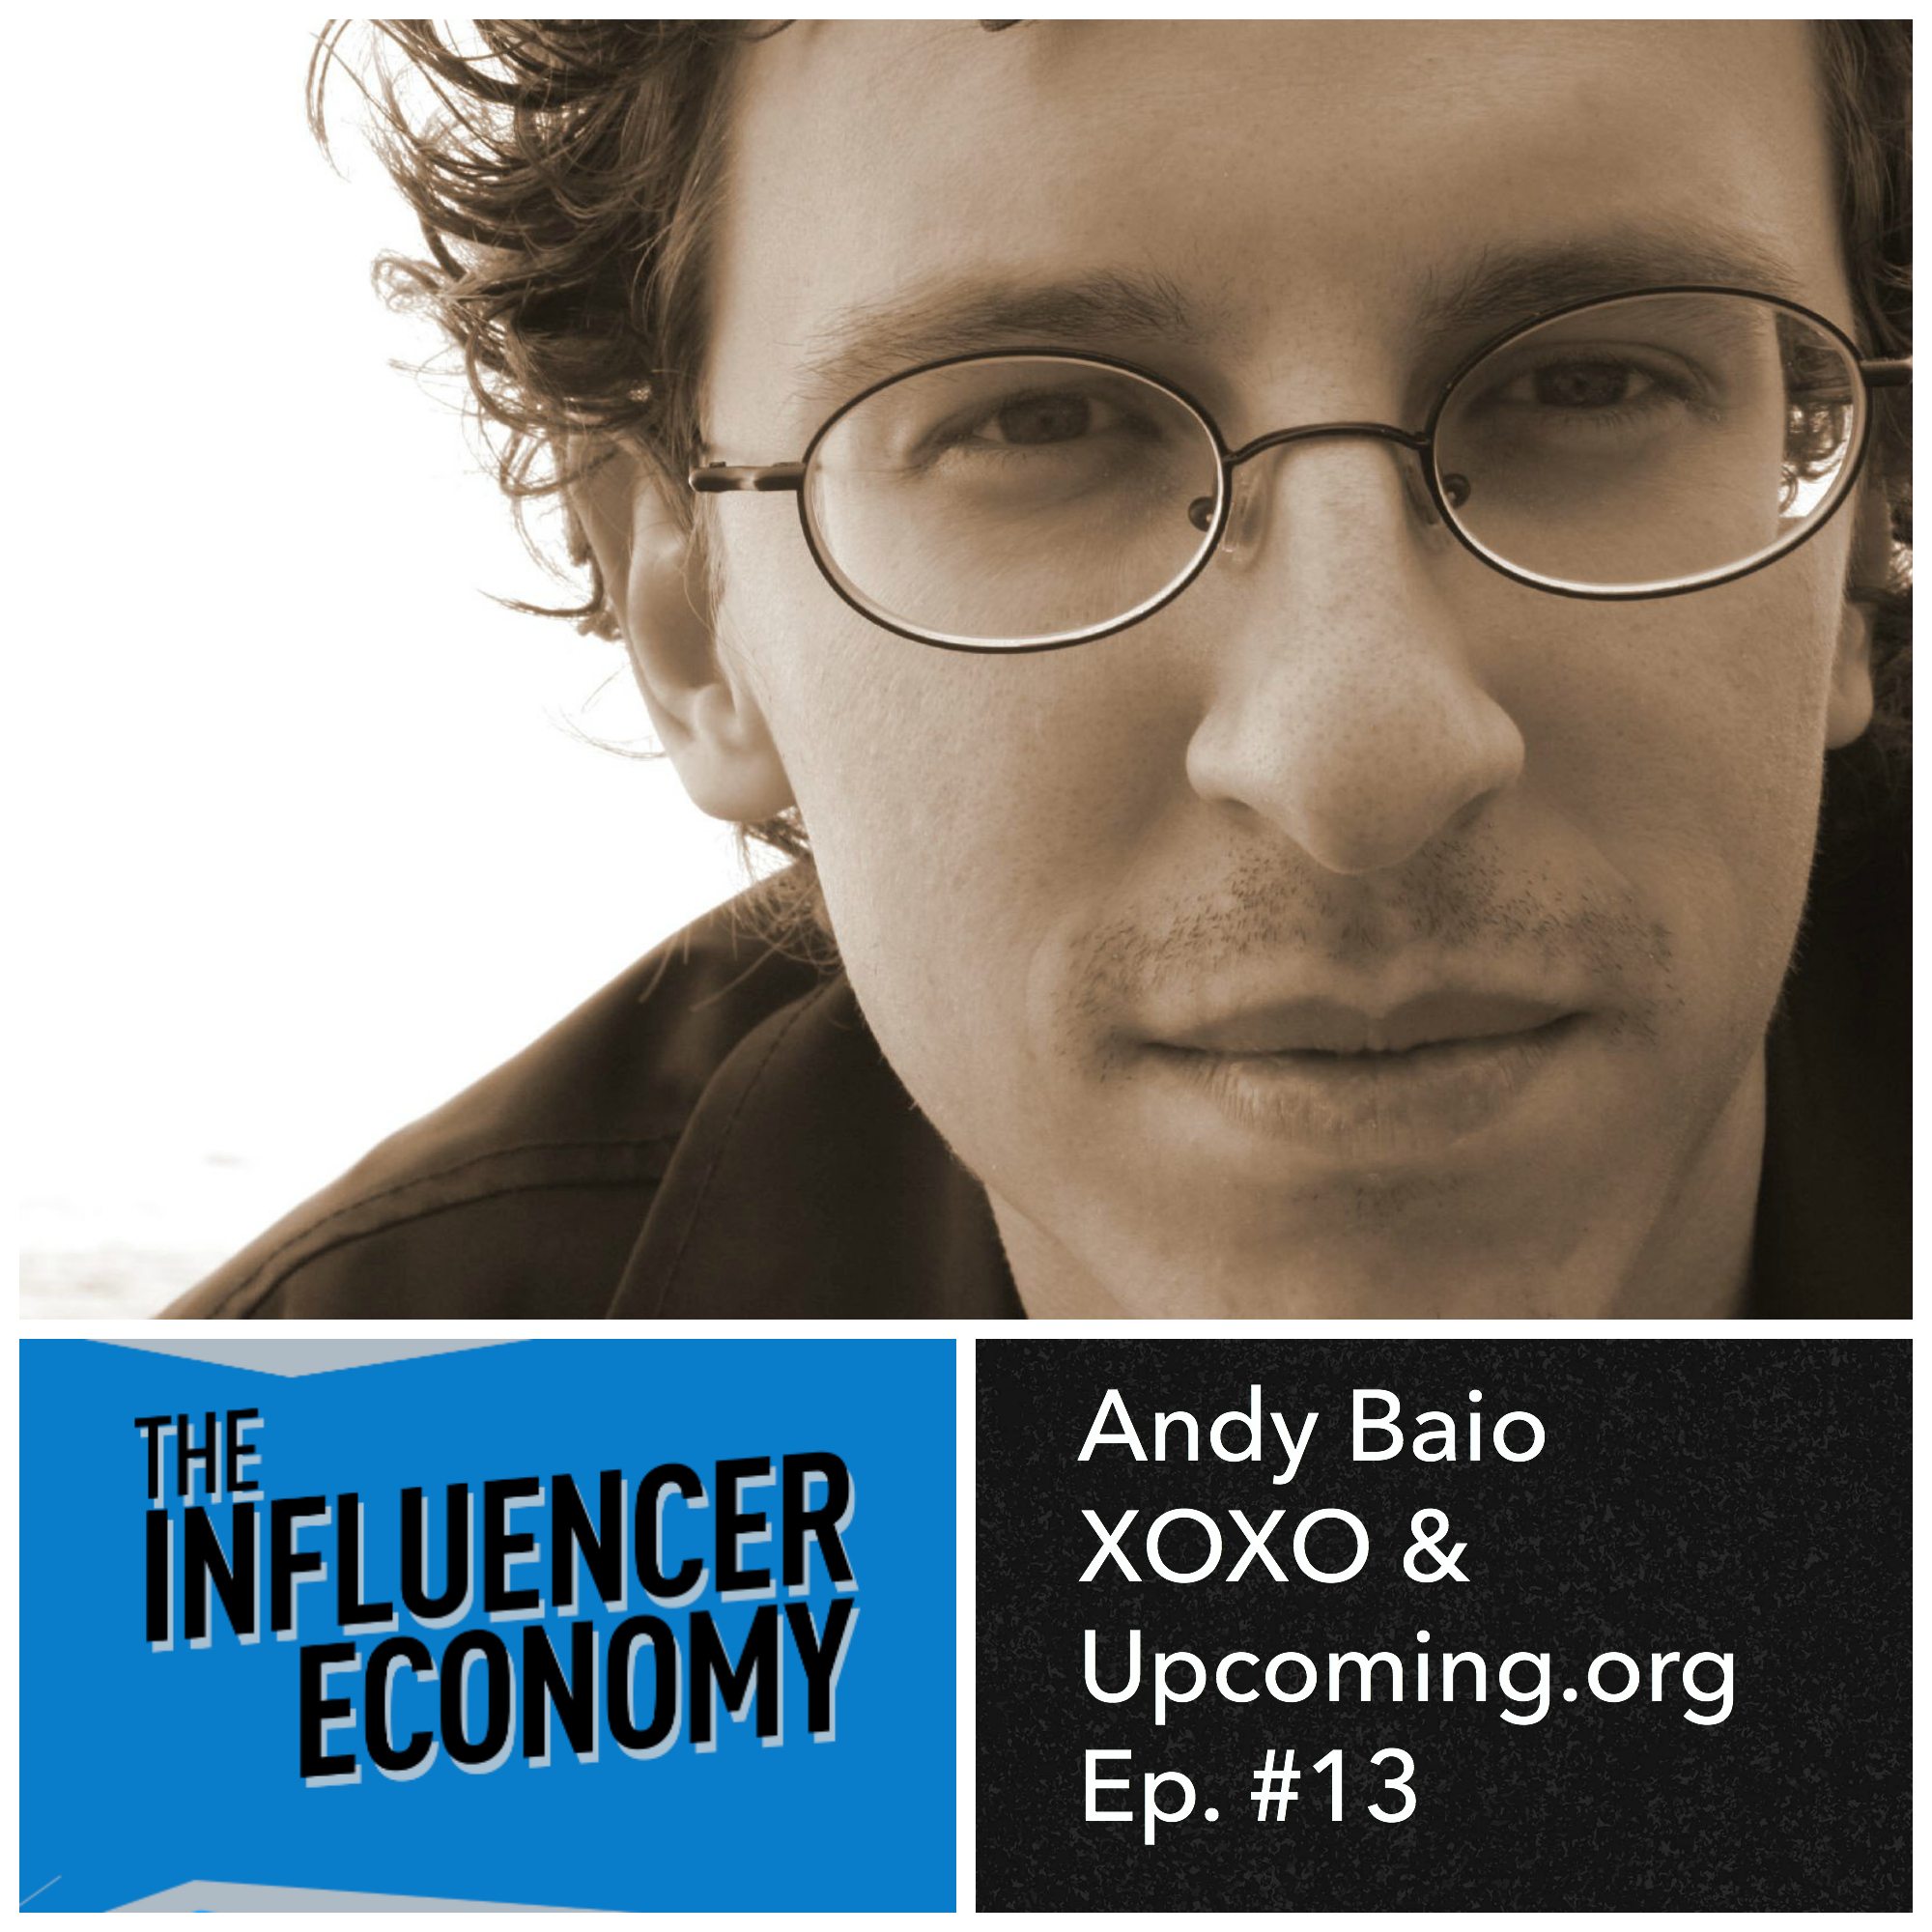 Andy Baio , Founder of XOXO and Upcoming.org